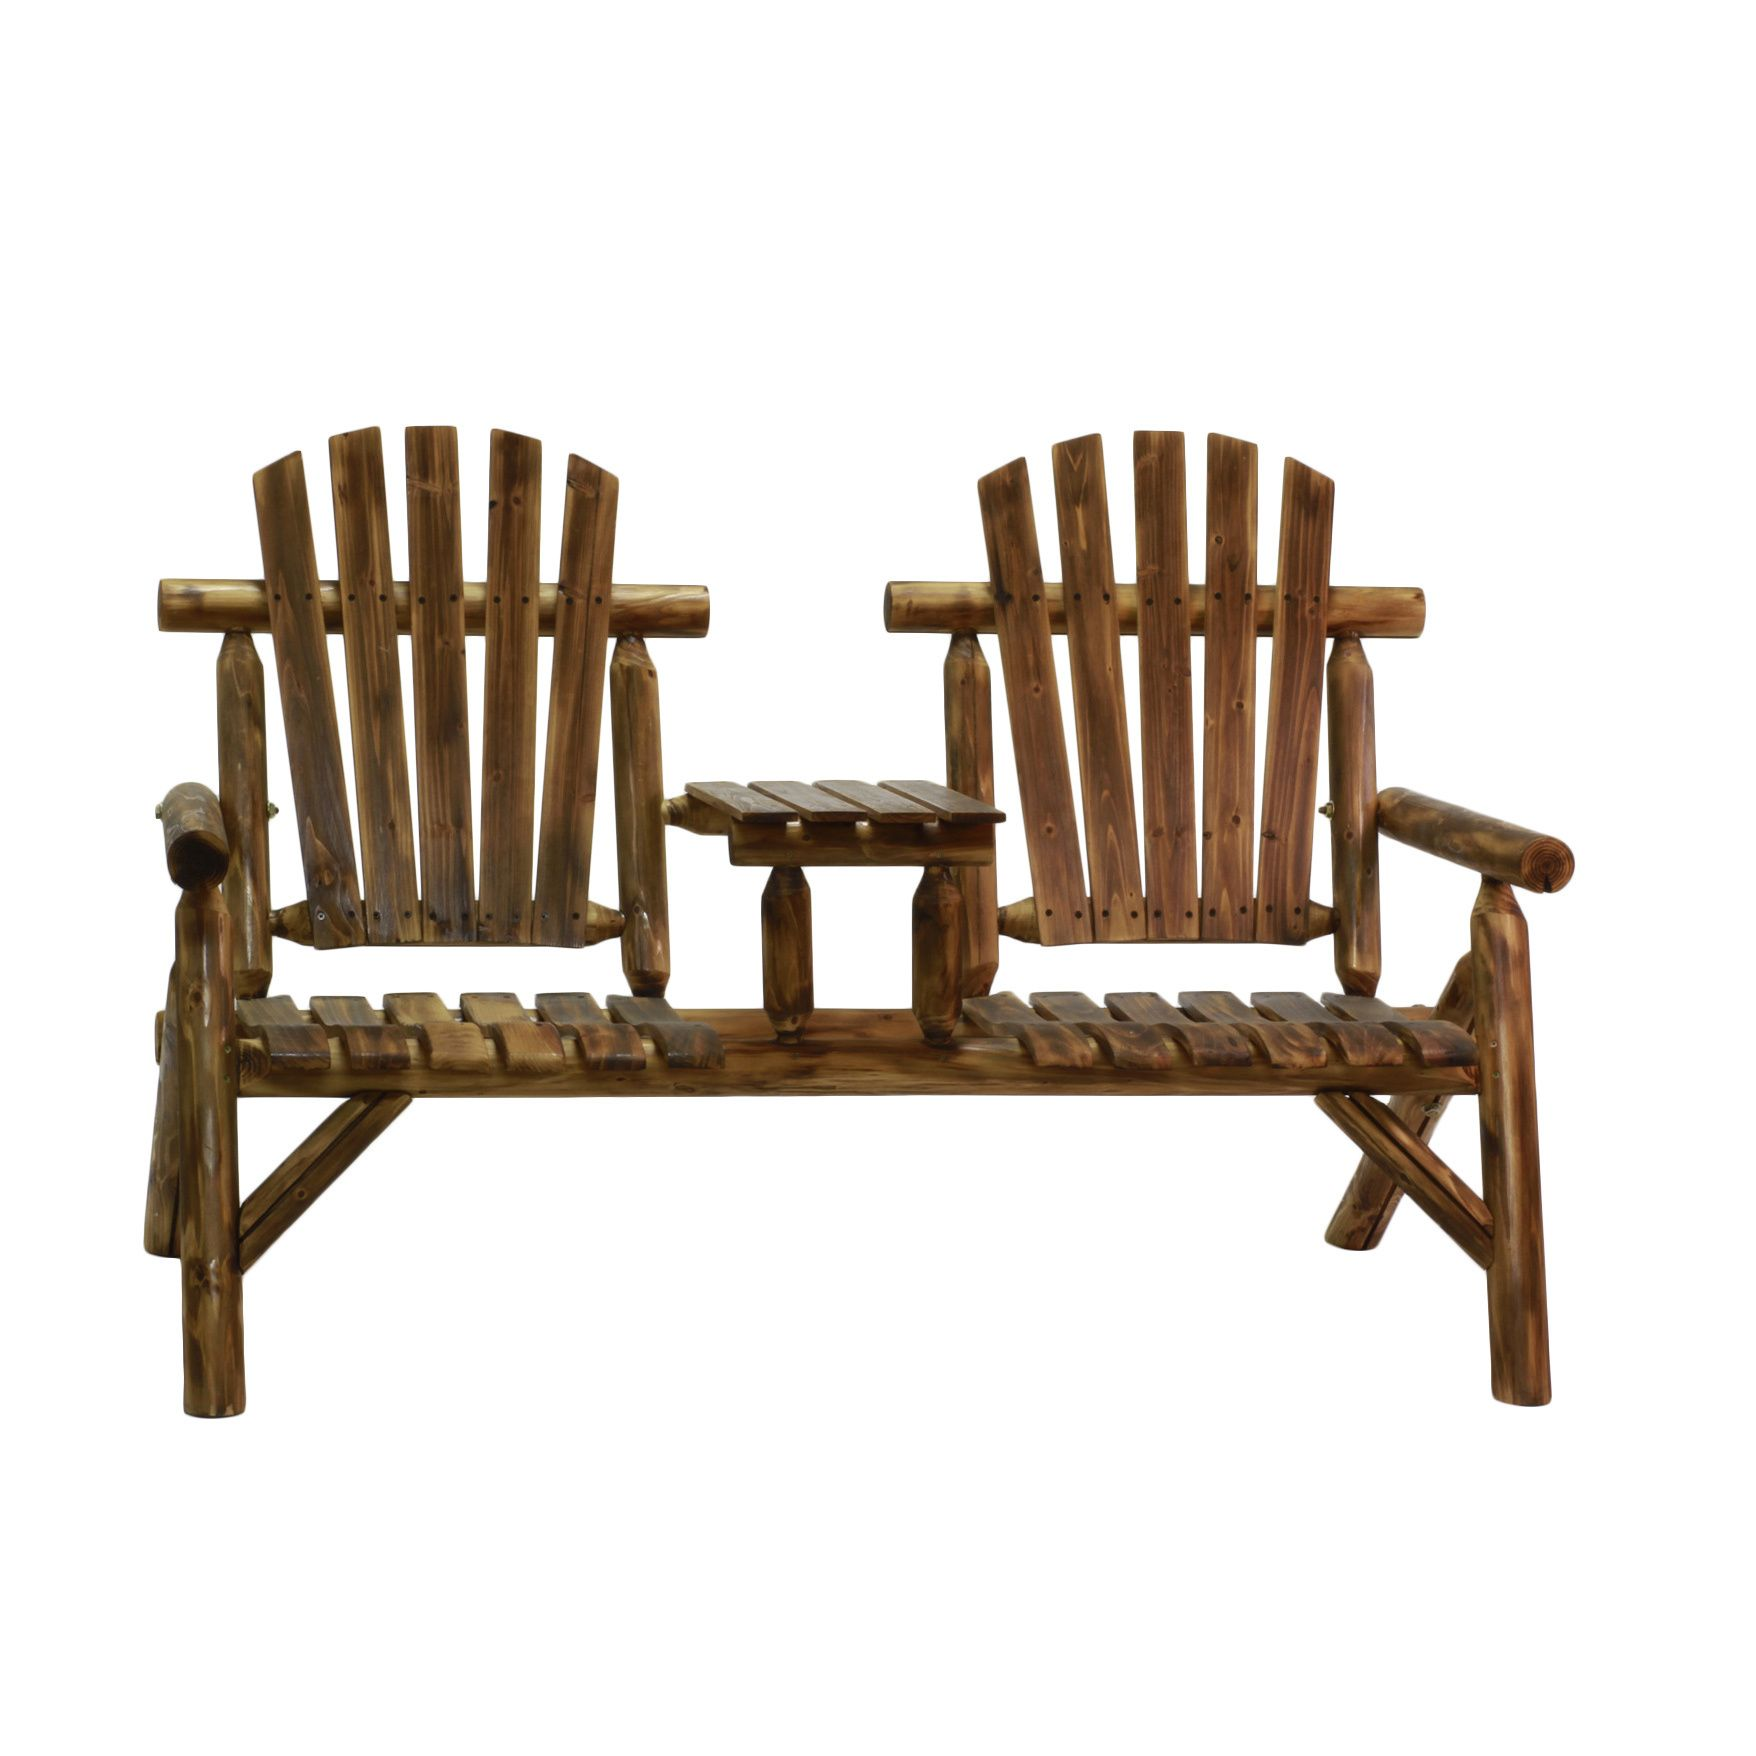 Enjoy The Summer Evening Breeze On This Rustic Two Seat Log Bench! The Fan  Back And Slatted Seat Will Provide You With Support And Comfort.